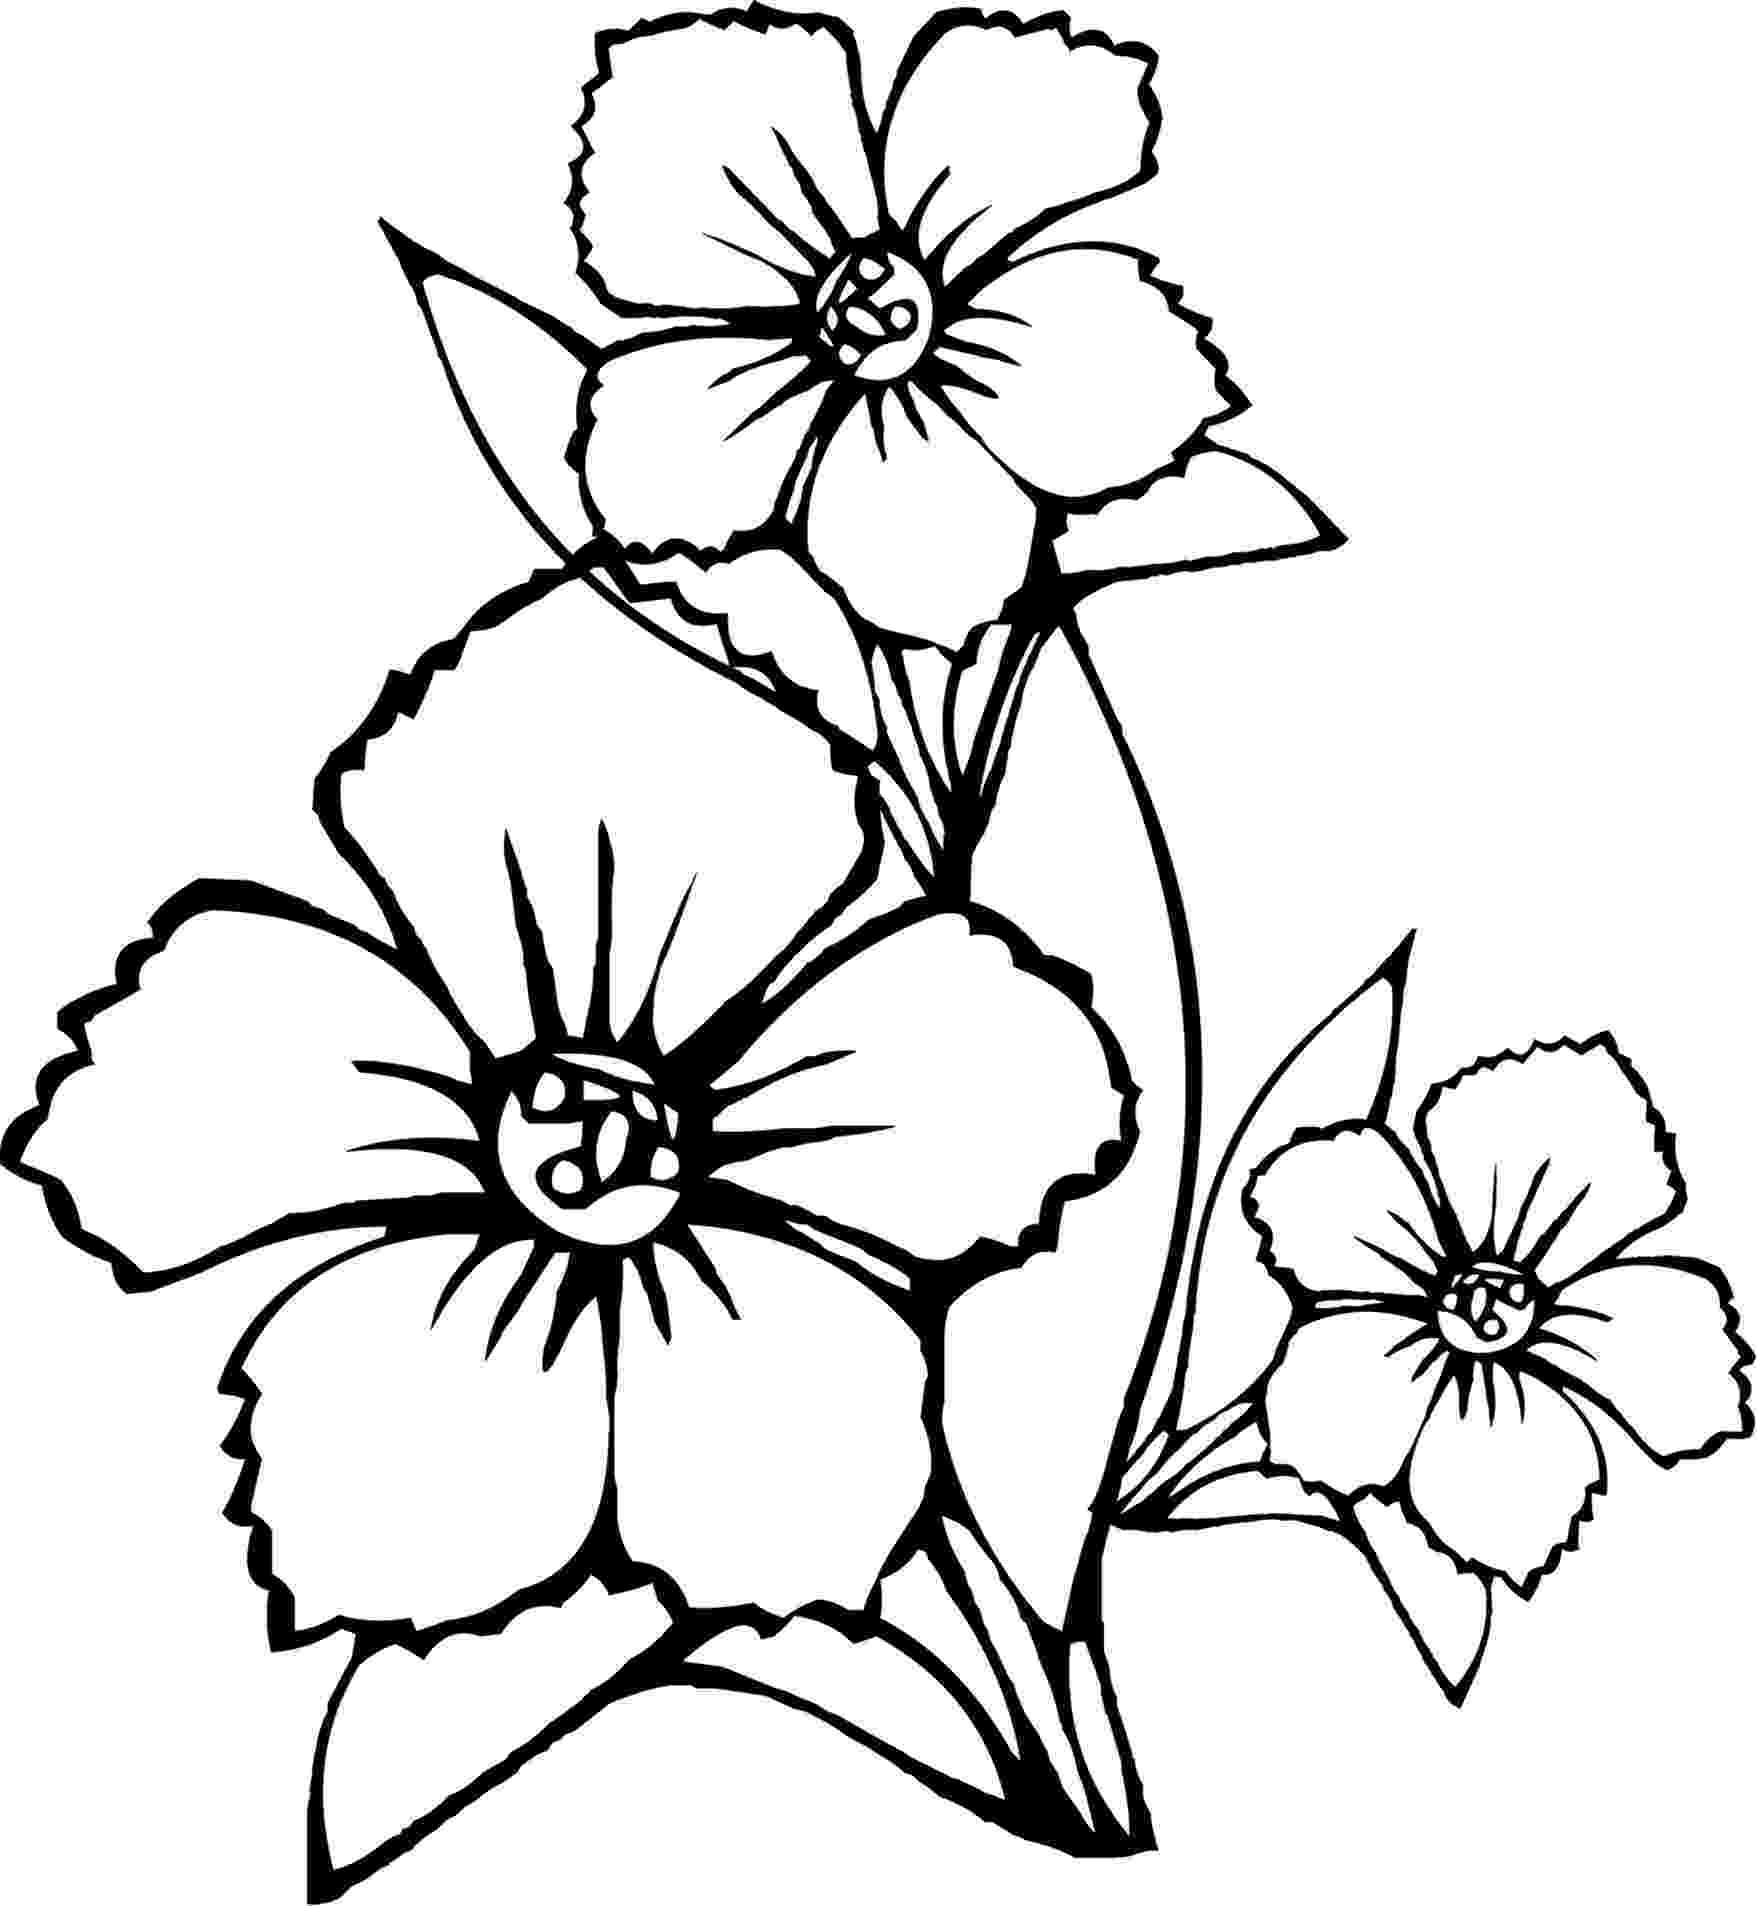 flowers coloring pages for kids free printable flower coloring pages for kids best coloring flowers for pages kids